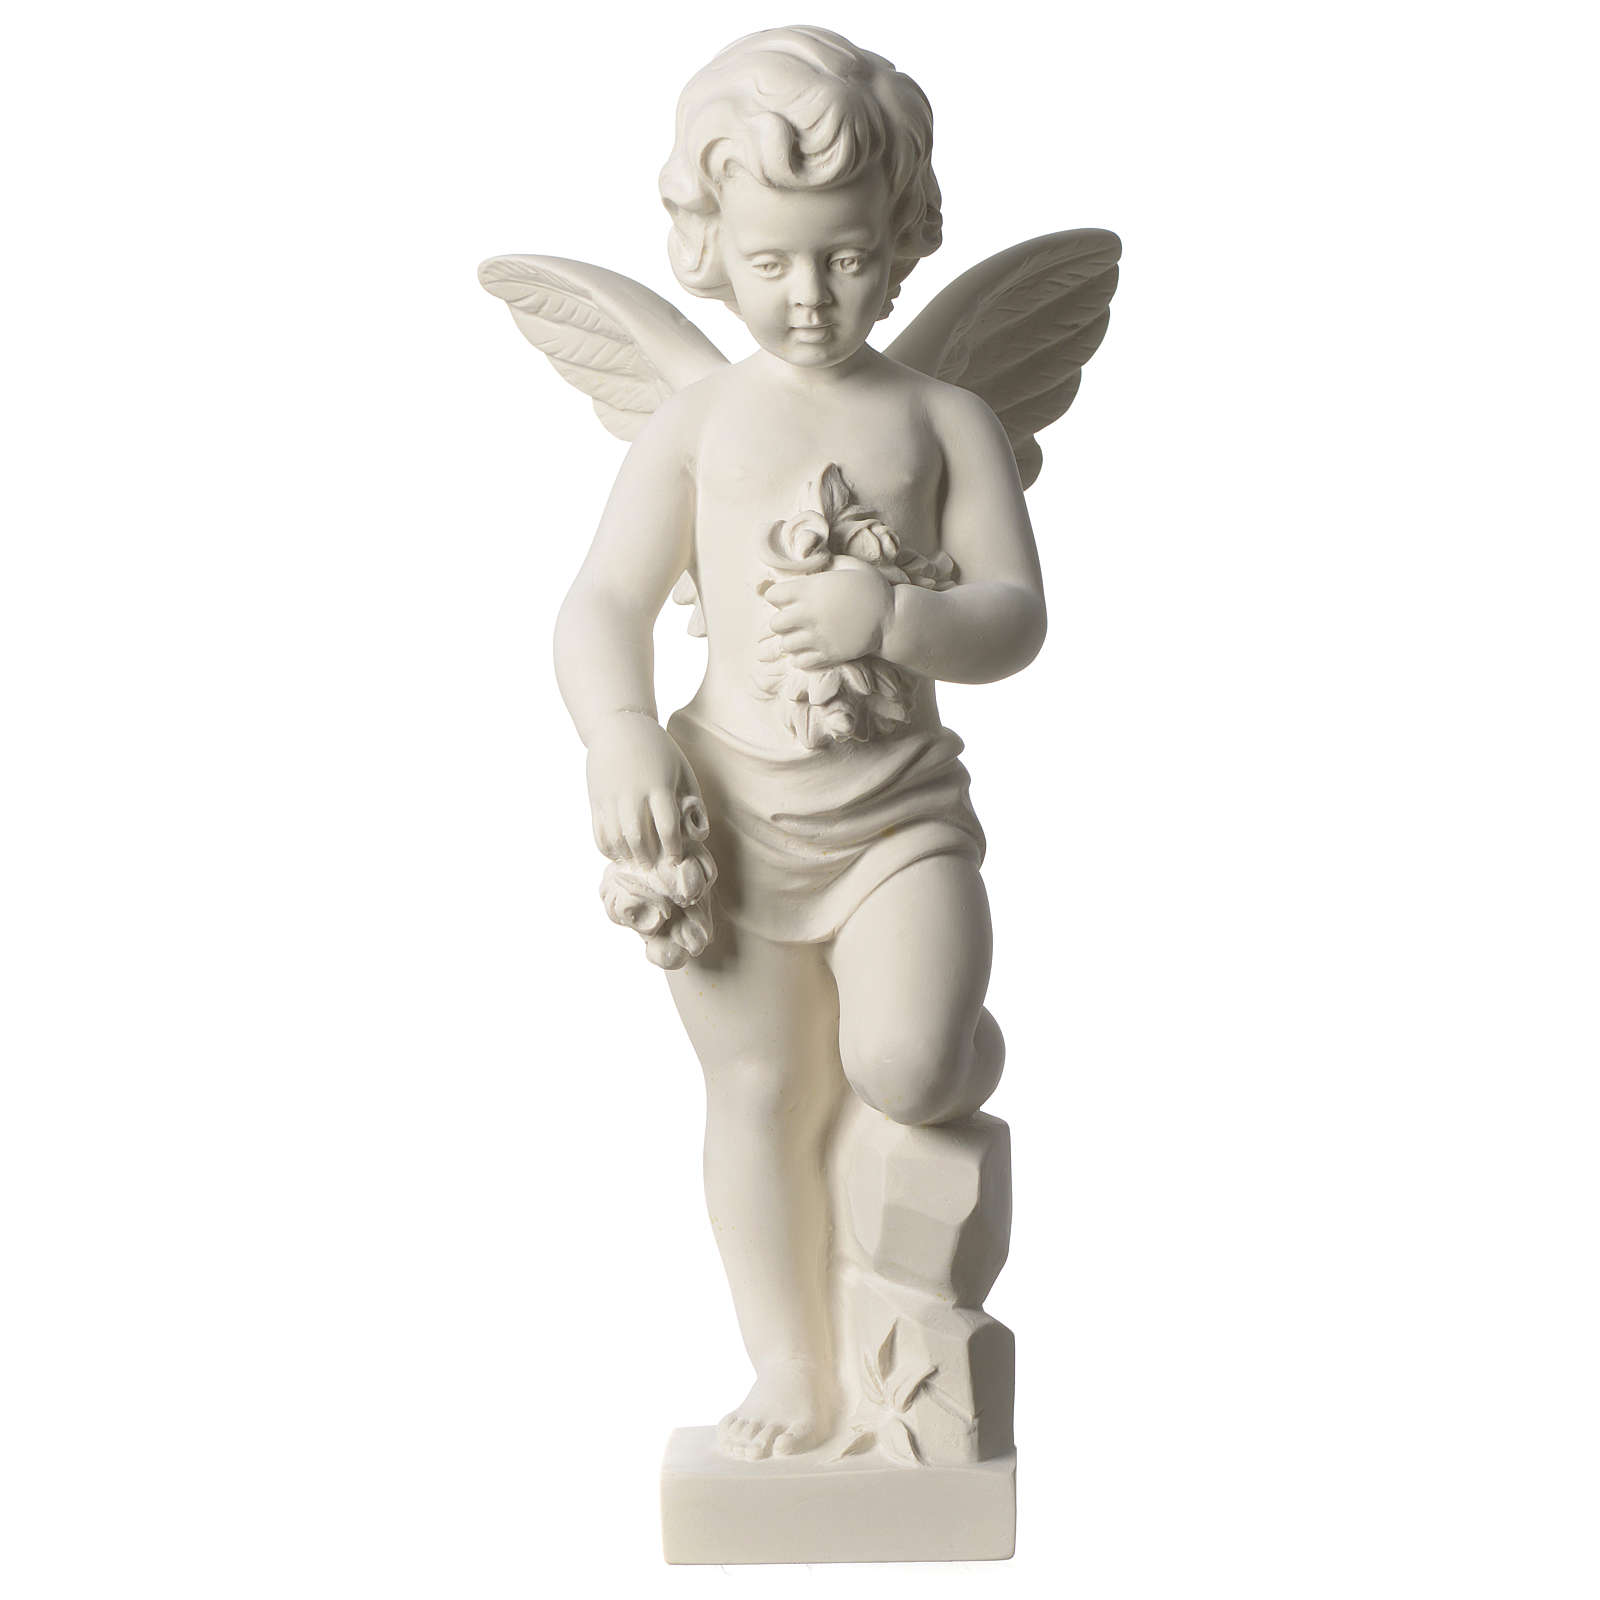 Angel throwing flowers white composite marble statue 17.5 inc 4